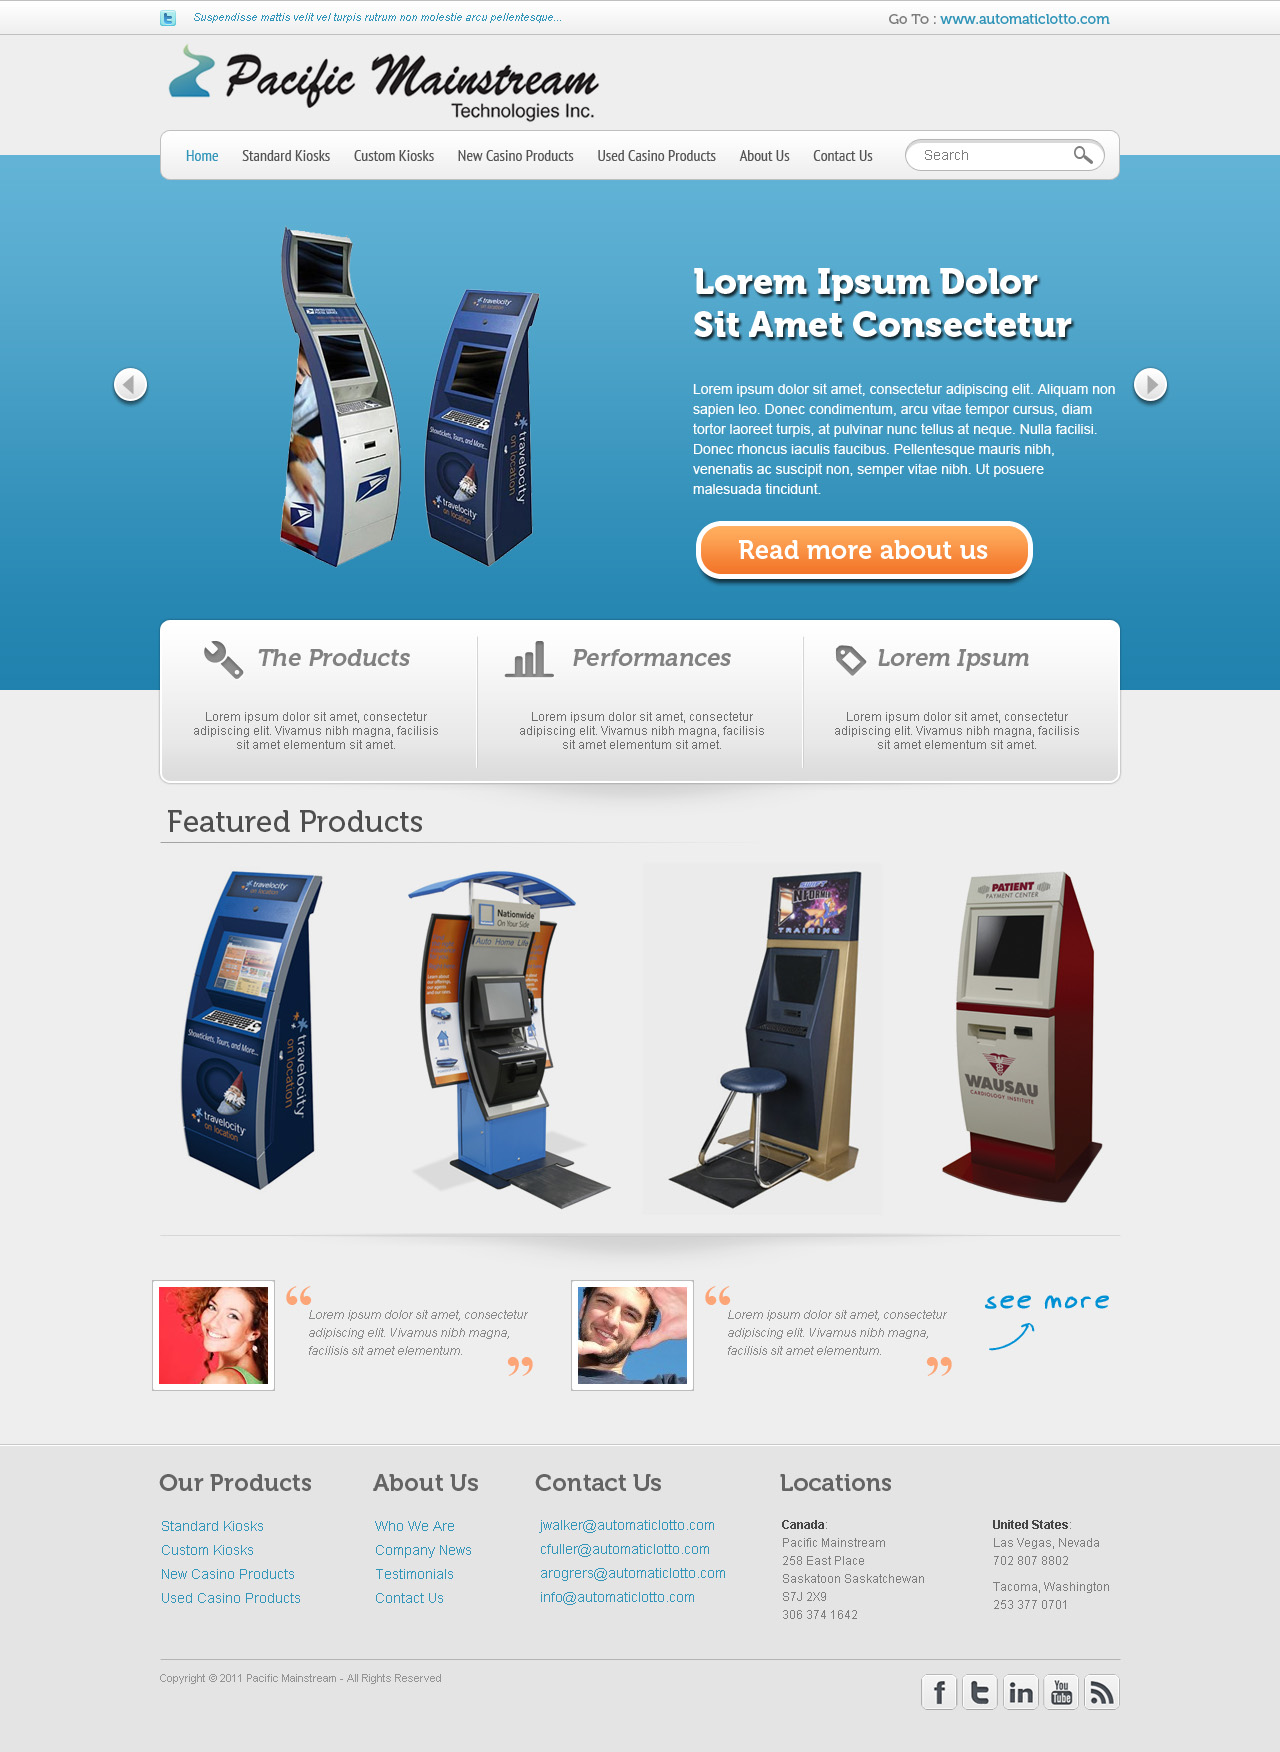 Web Page Design by Verdy Verdiansya - Entry No. 10 in the Web Page Design Contest Fun Web Page Design for Mainstream Pacific Technologies Inc..